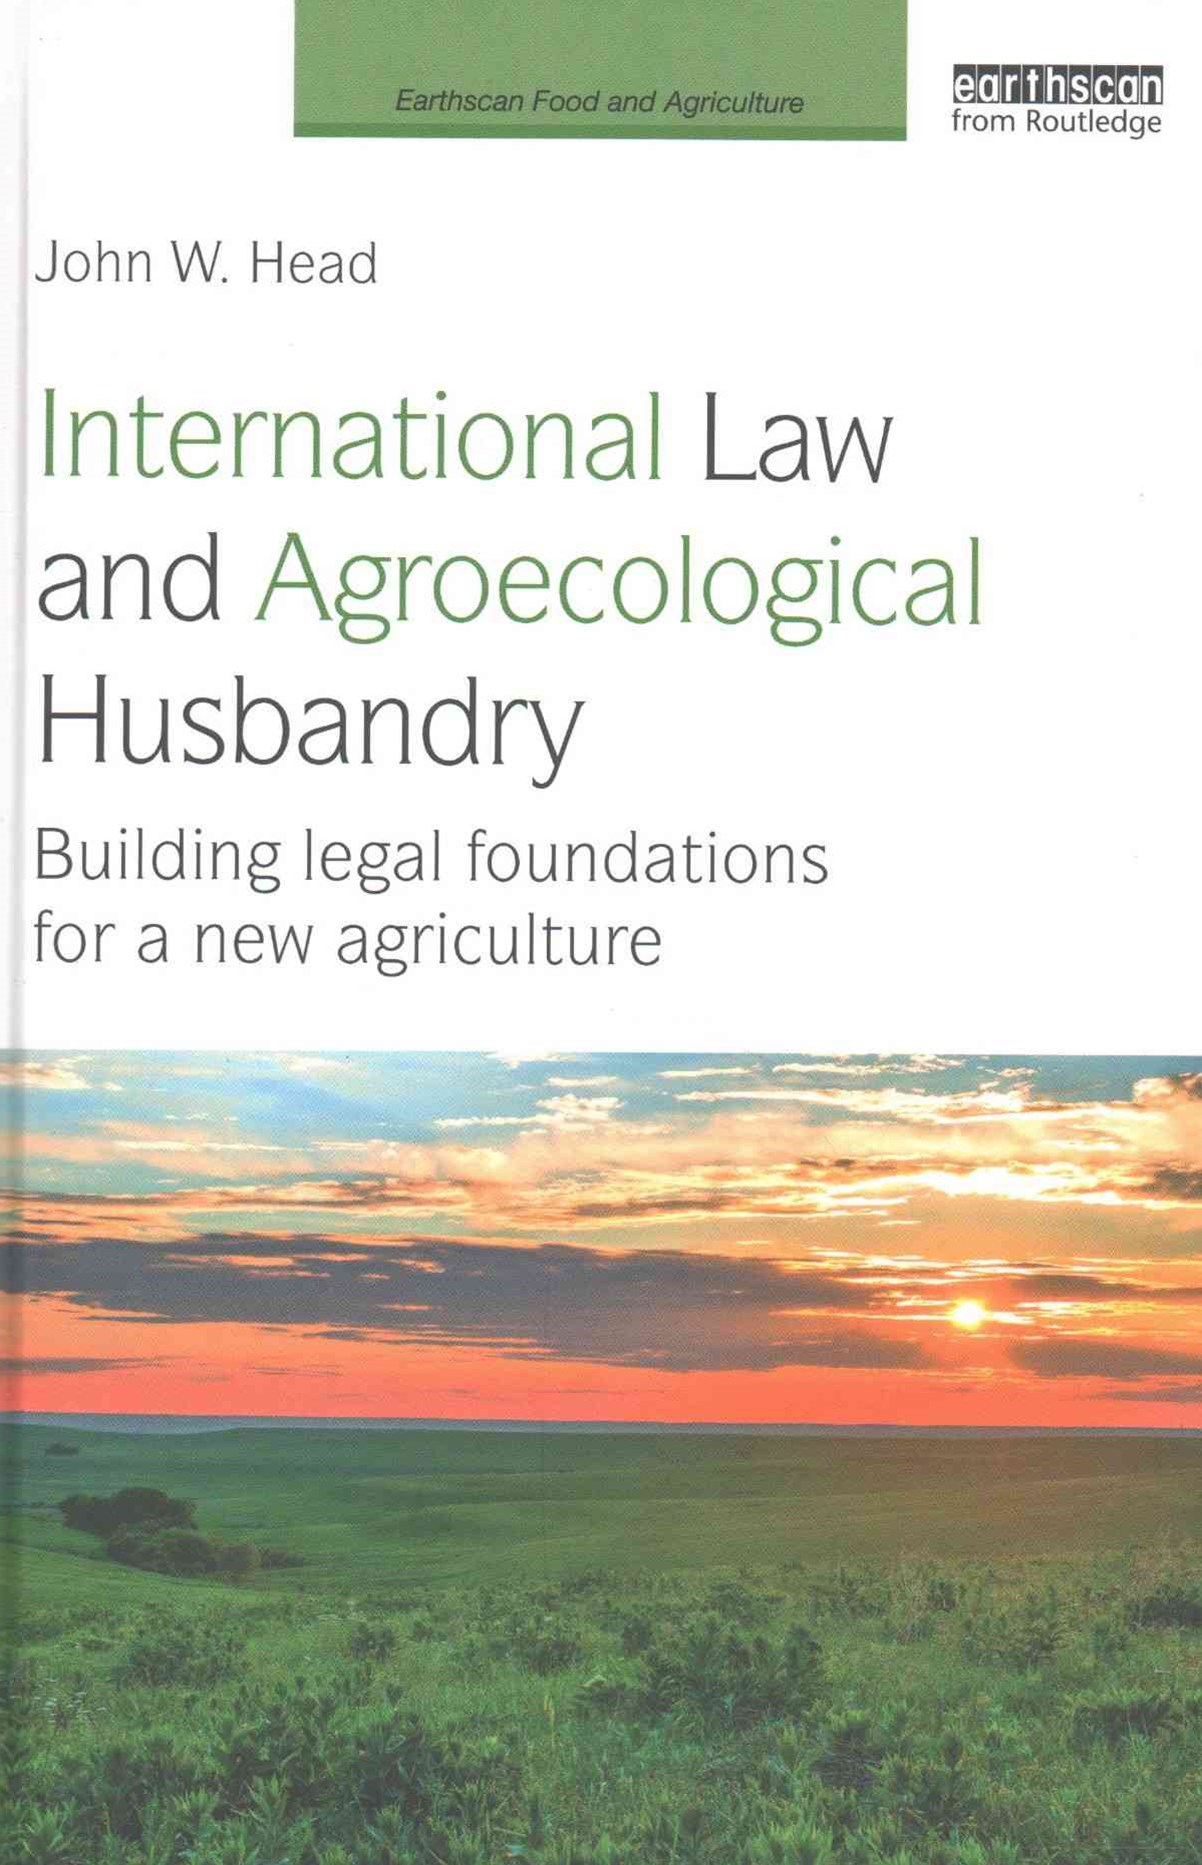 International Law and Agroecological Husbandry